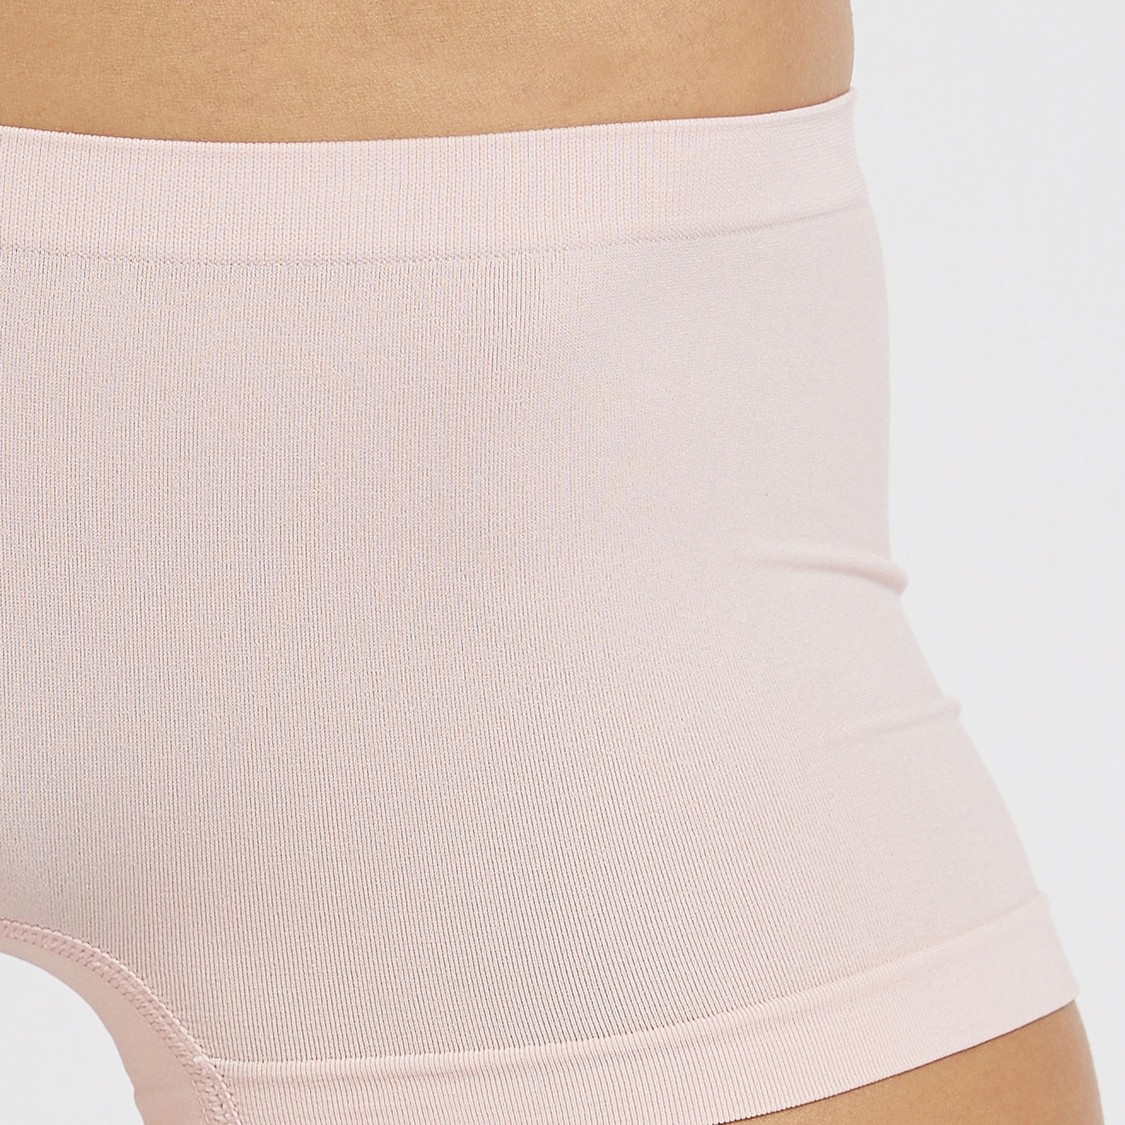 Set of 2 - Solid Shaping Briefs with Elasticised Waistband